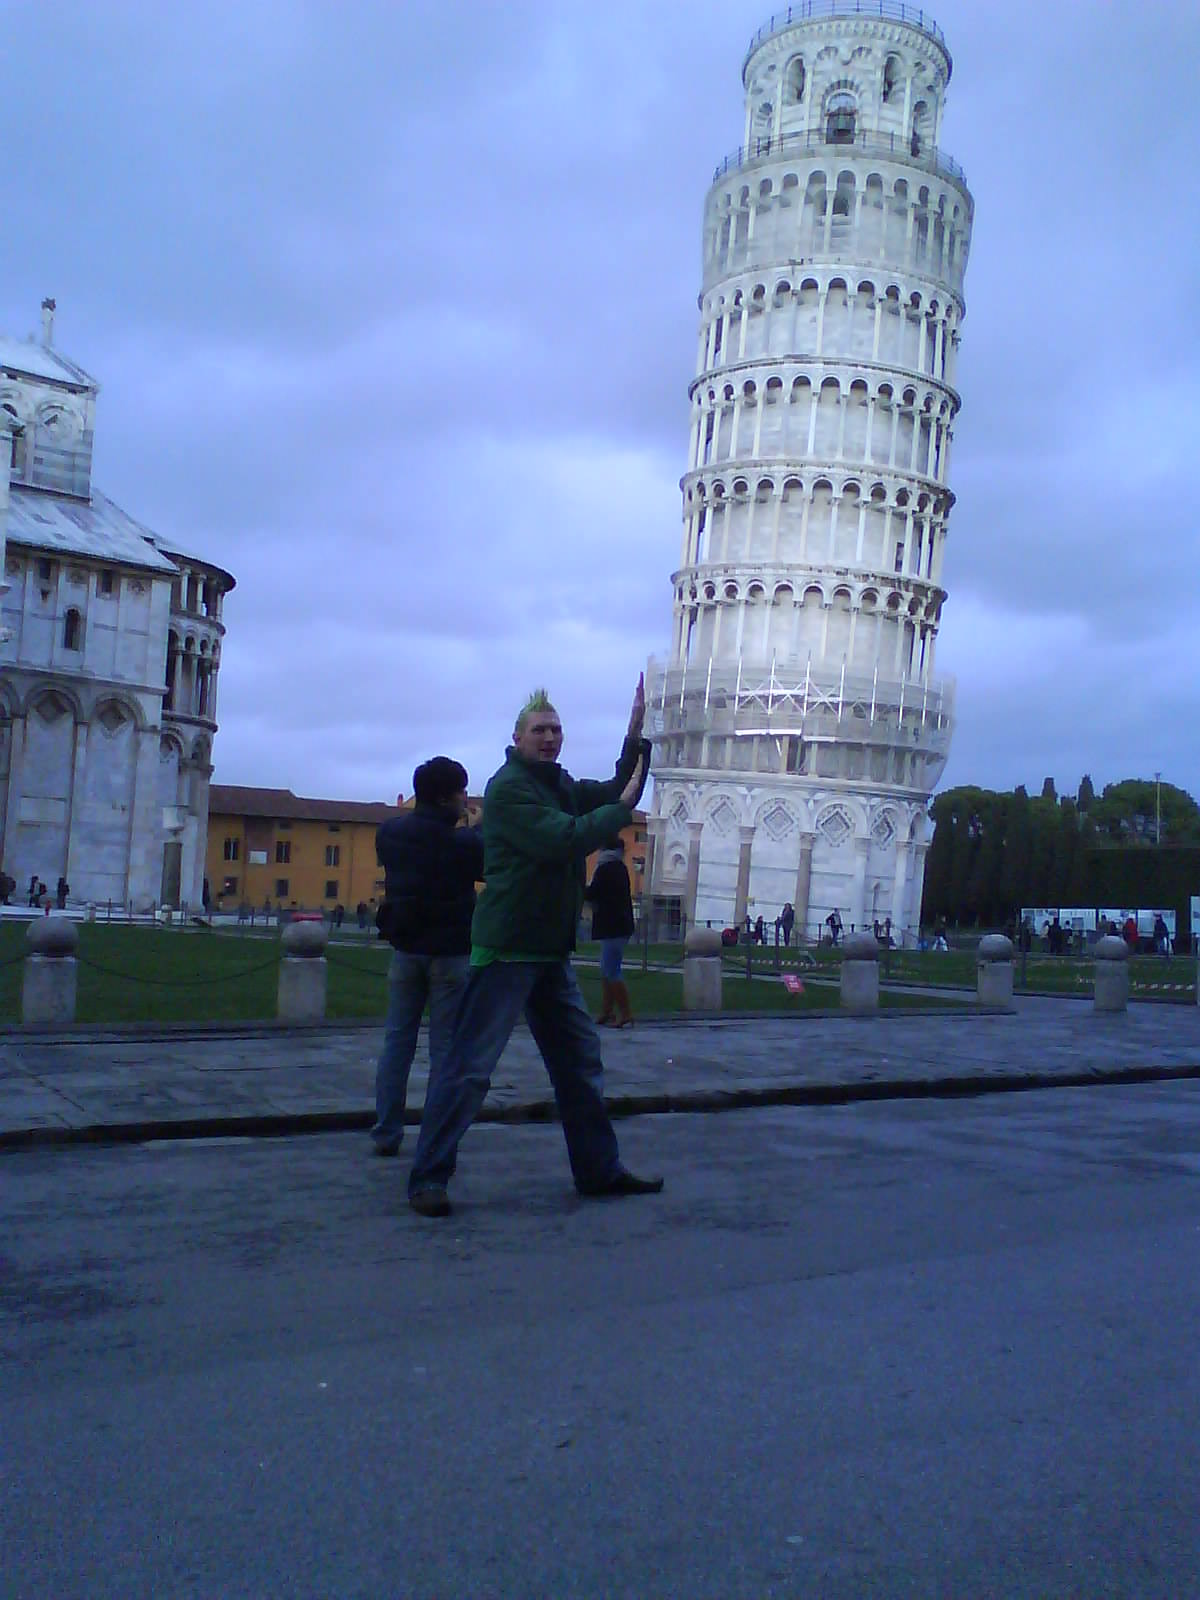 Jonny Blair pushing the leaning tower of pisa